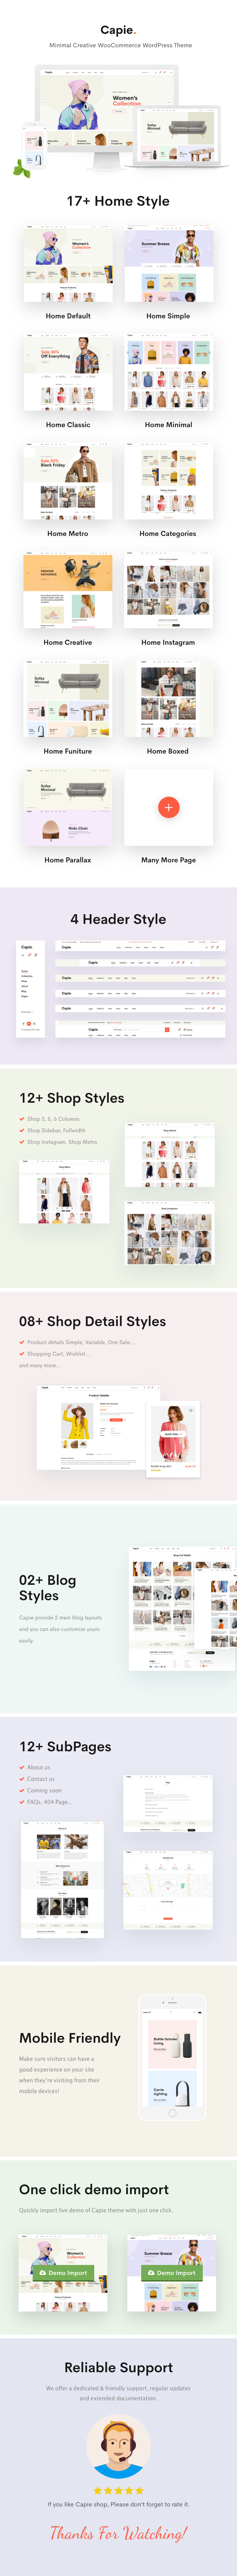 Capie - Minimal Creative WooCommerce WordPress Theme - 4